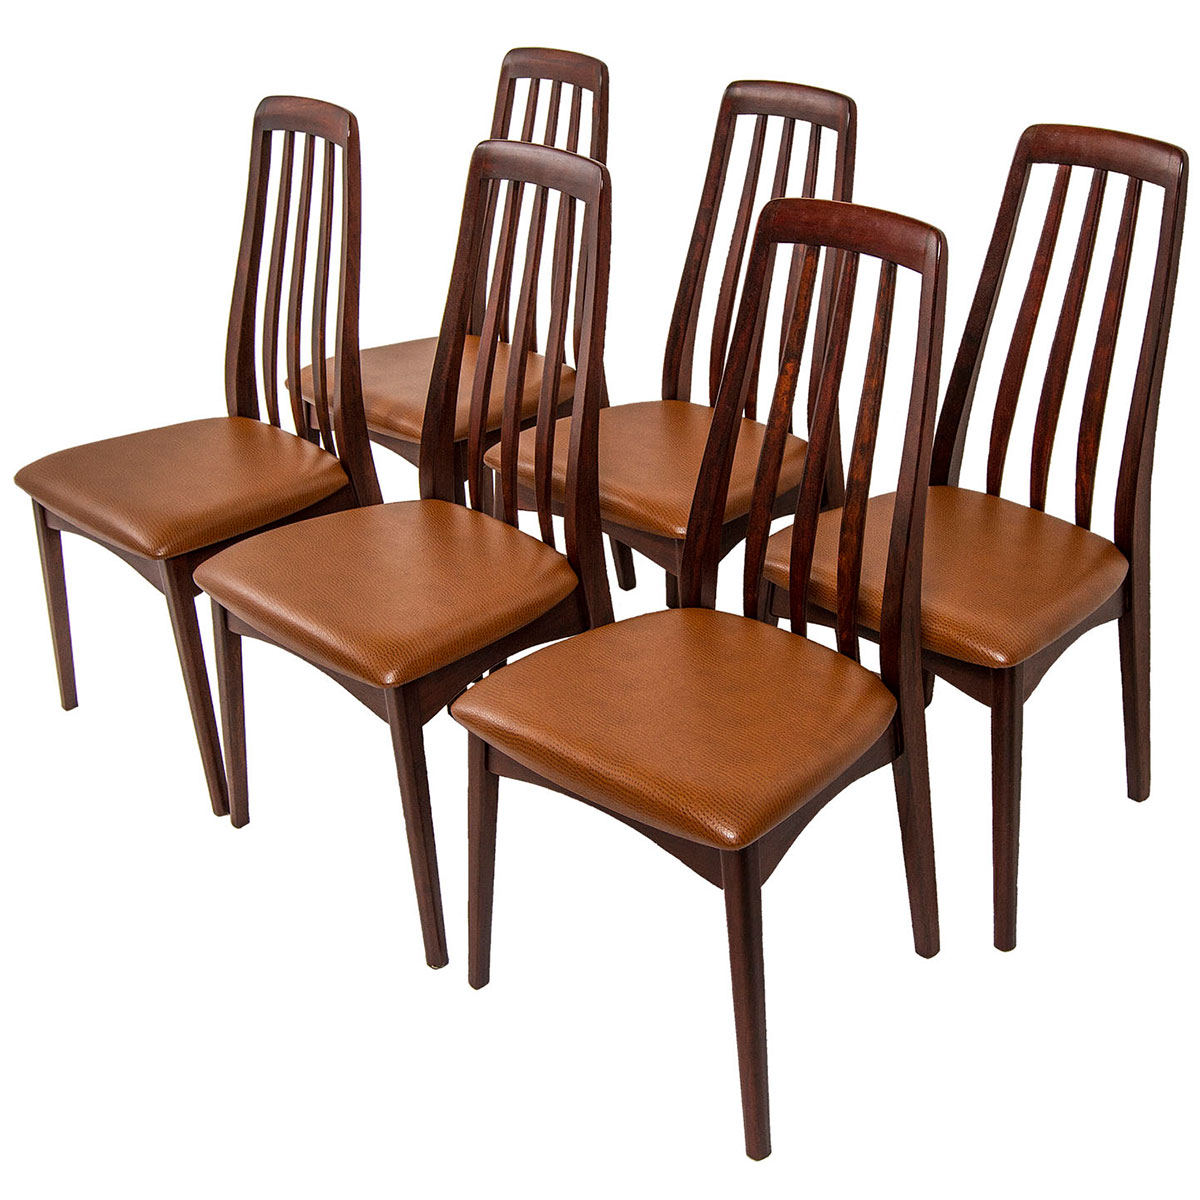 Set of 6 Swedish Rosewood Dining Chairs w/ New CAFE-MOCHA Upholstery